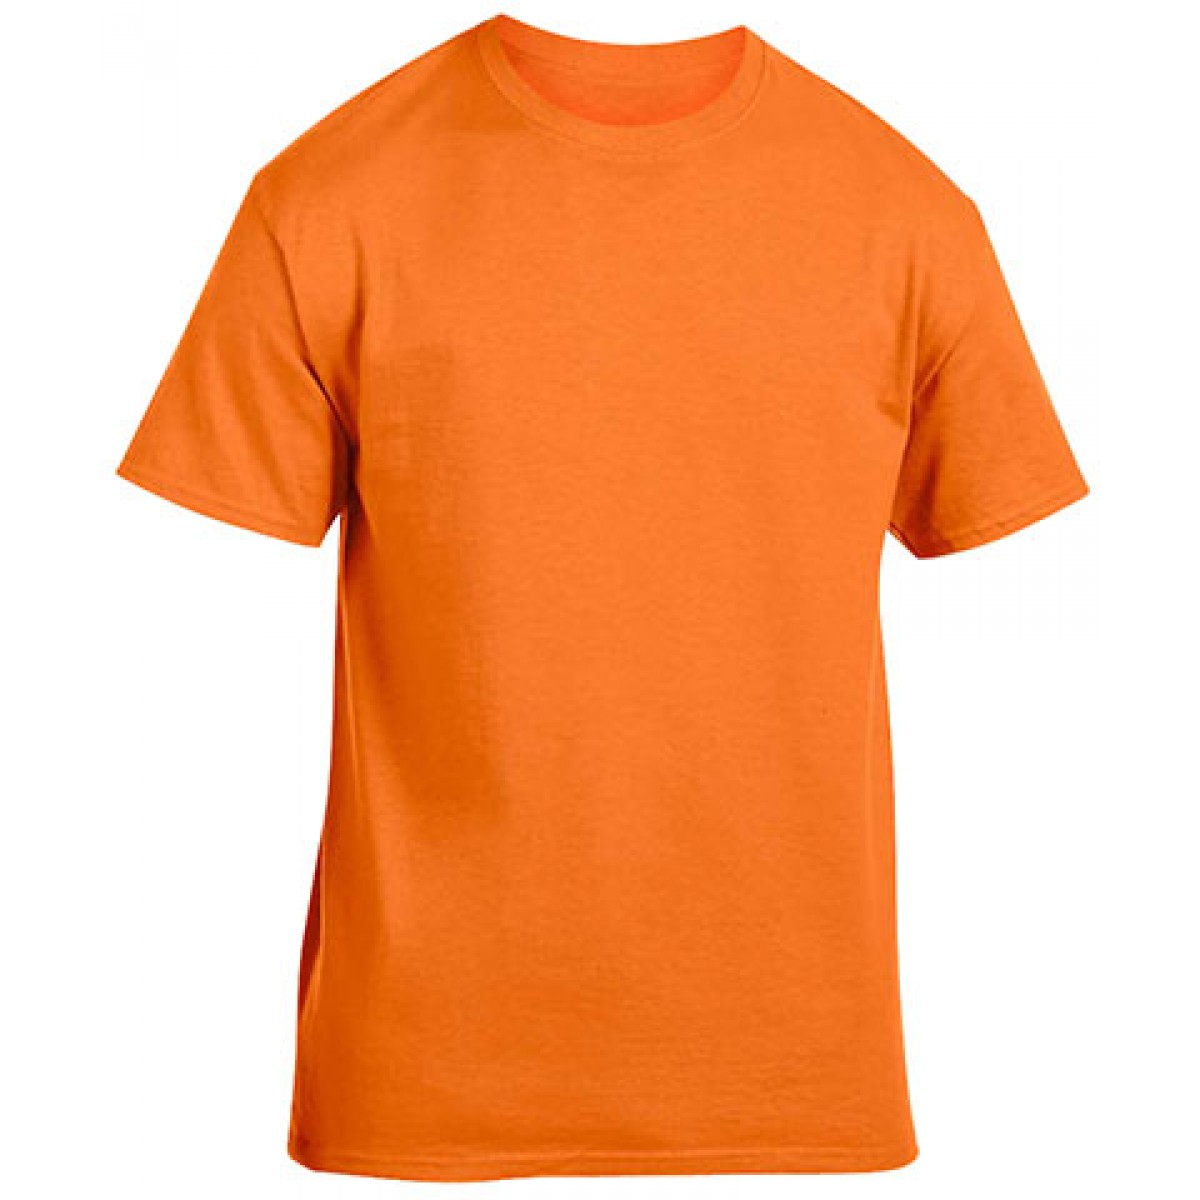 Cotton Short Sleeve T-Shirt-Safety Orange-M